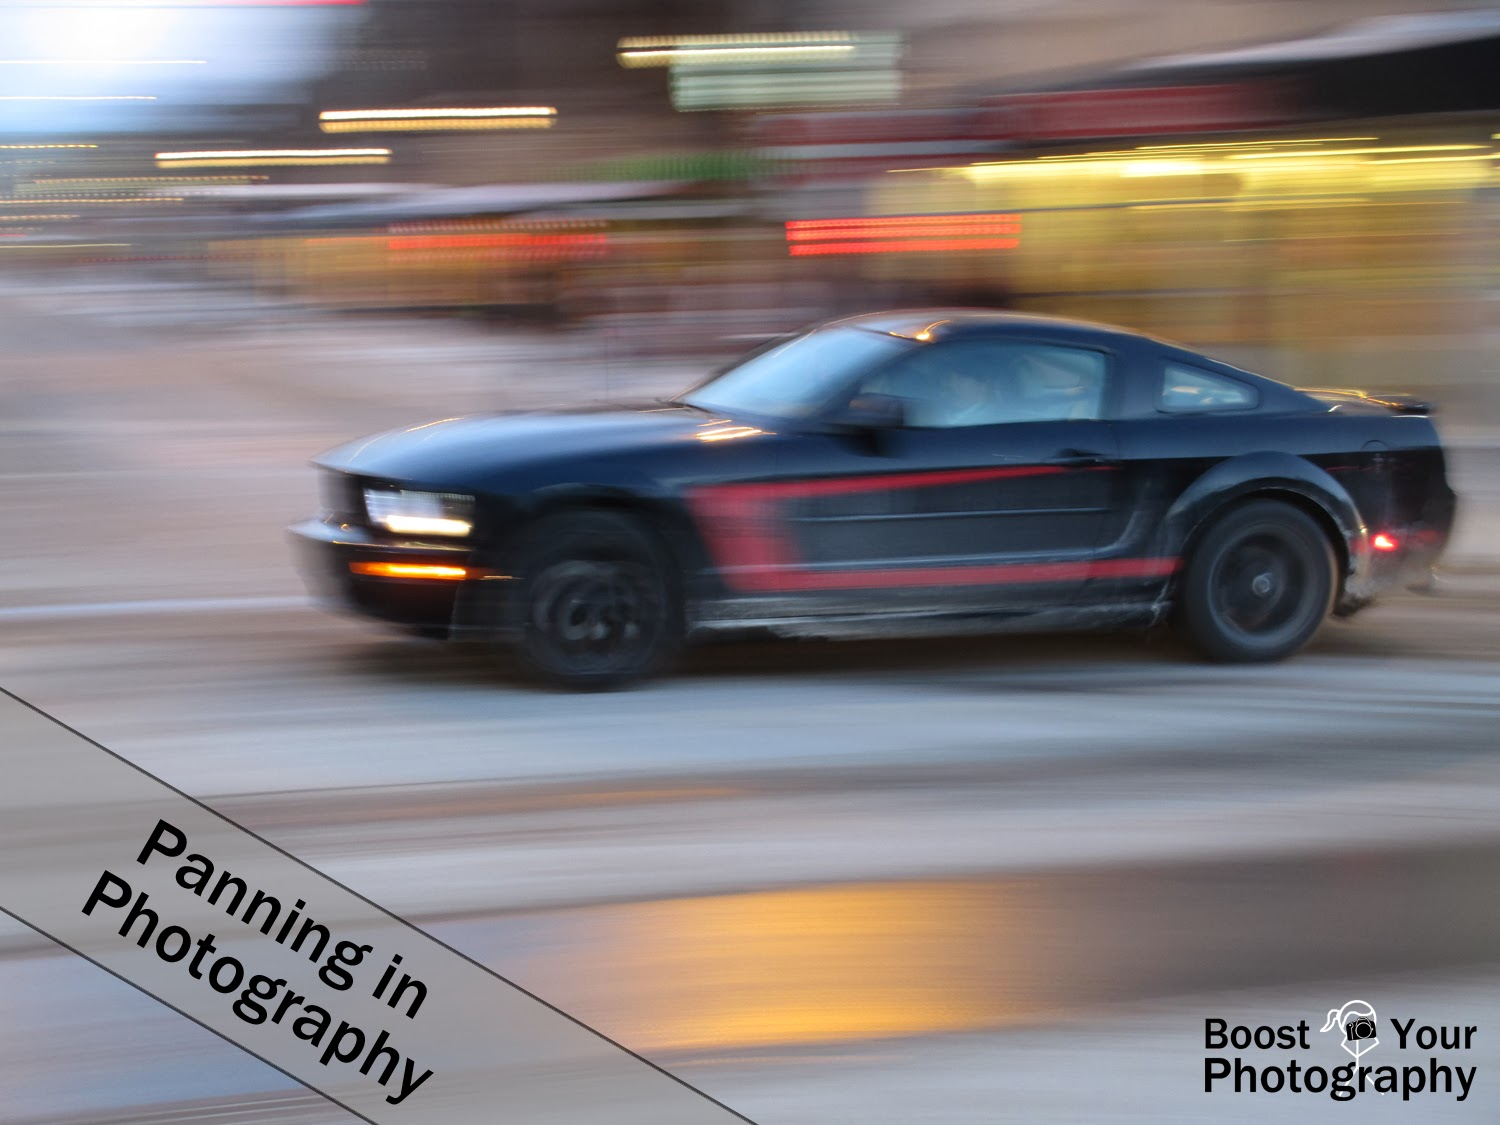 Panning in Photography | Boost Your Photography, panning, photography, motion, blur, ICM, intentional camera movement